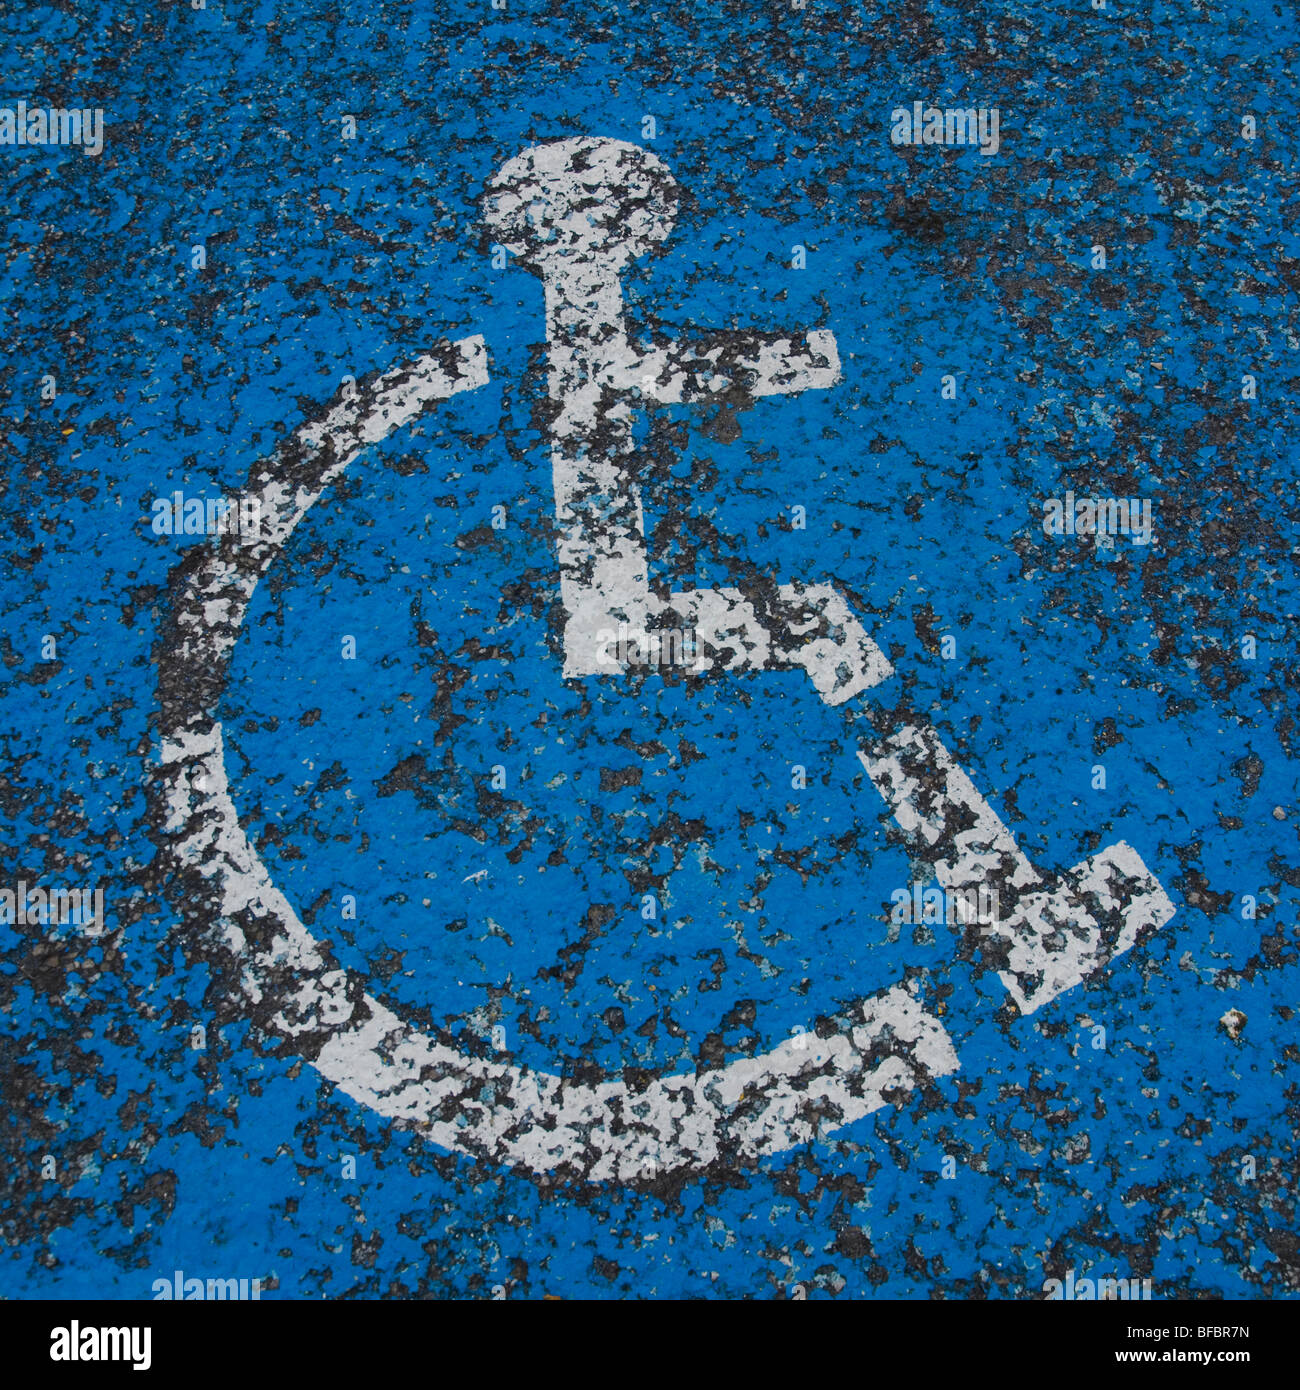 Wheelchair symbol dor disabled parking space painted on tar road surface. - Stock Image